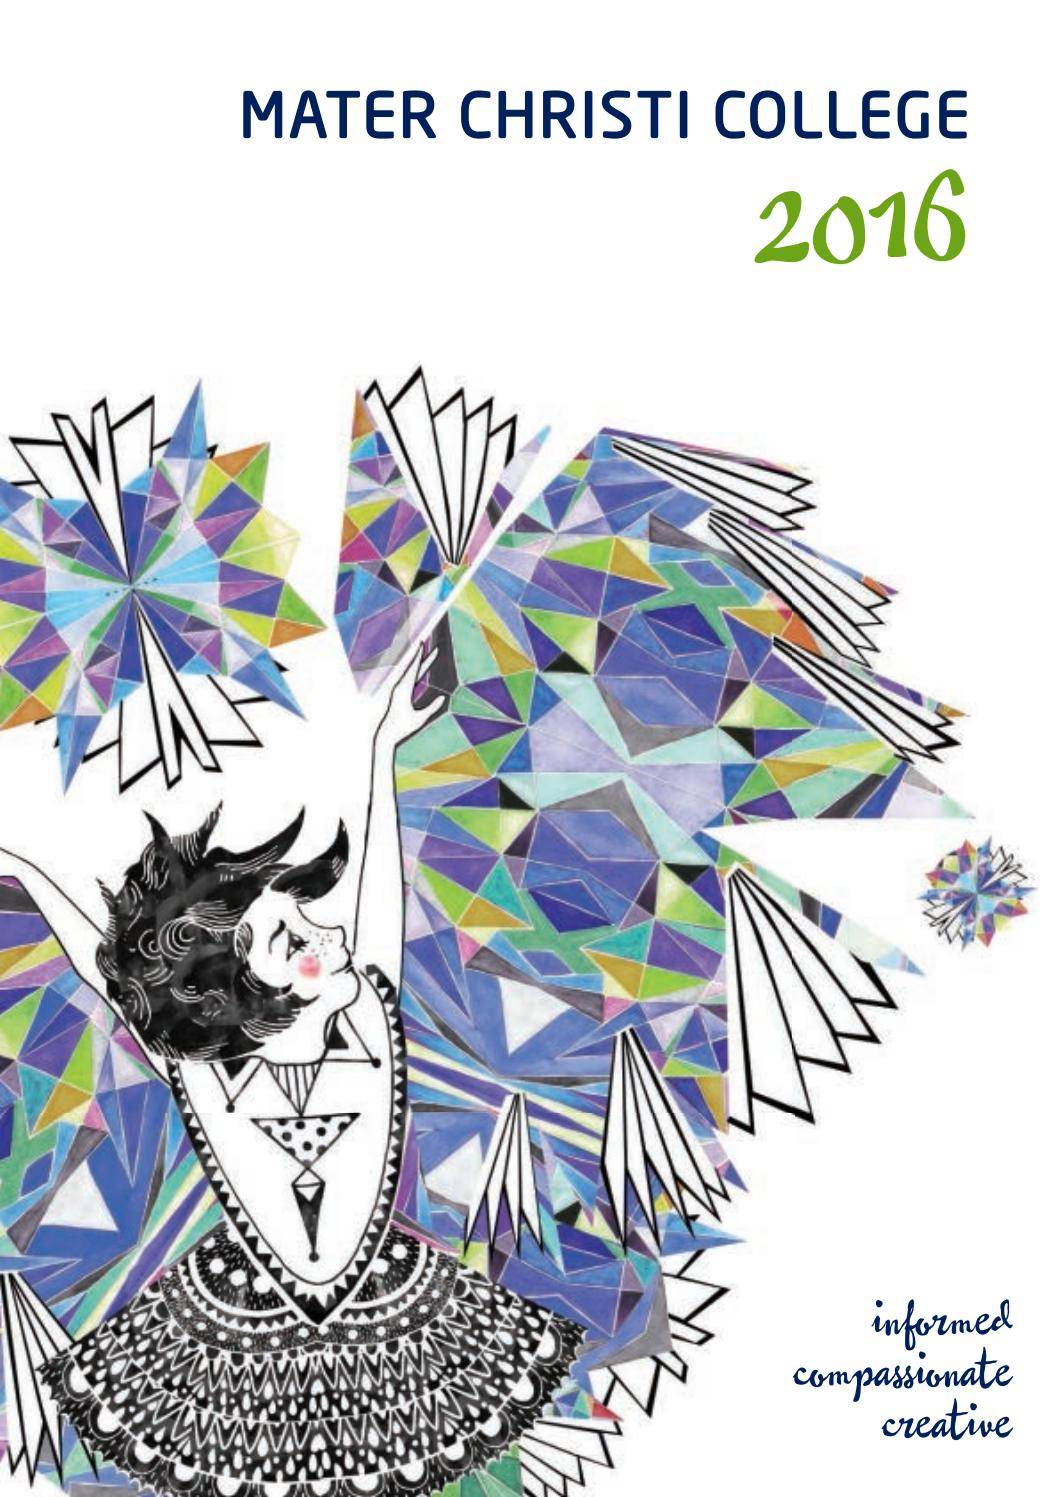 208b521cc1f Mater Christi College - 2016 Yearbook by Mater Christi College - issuu